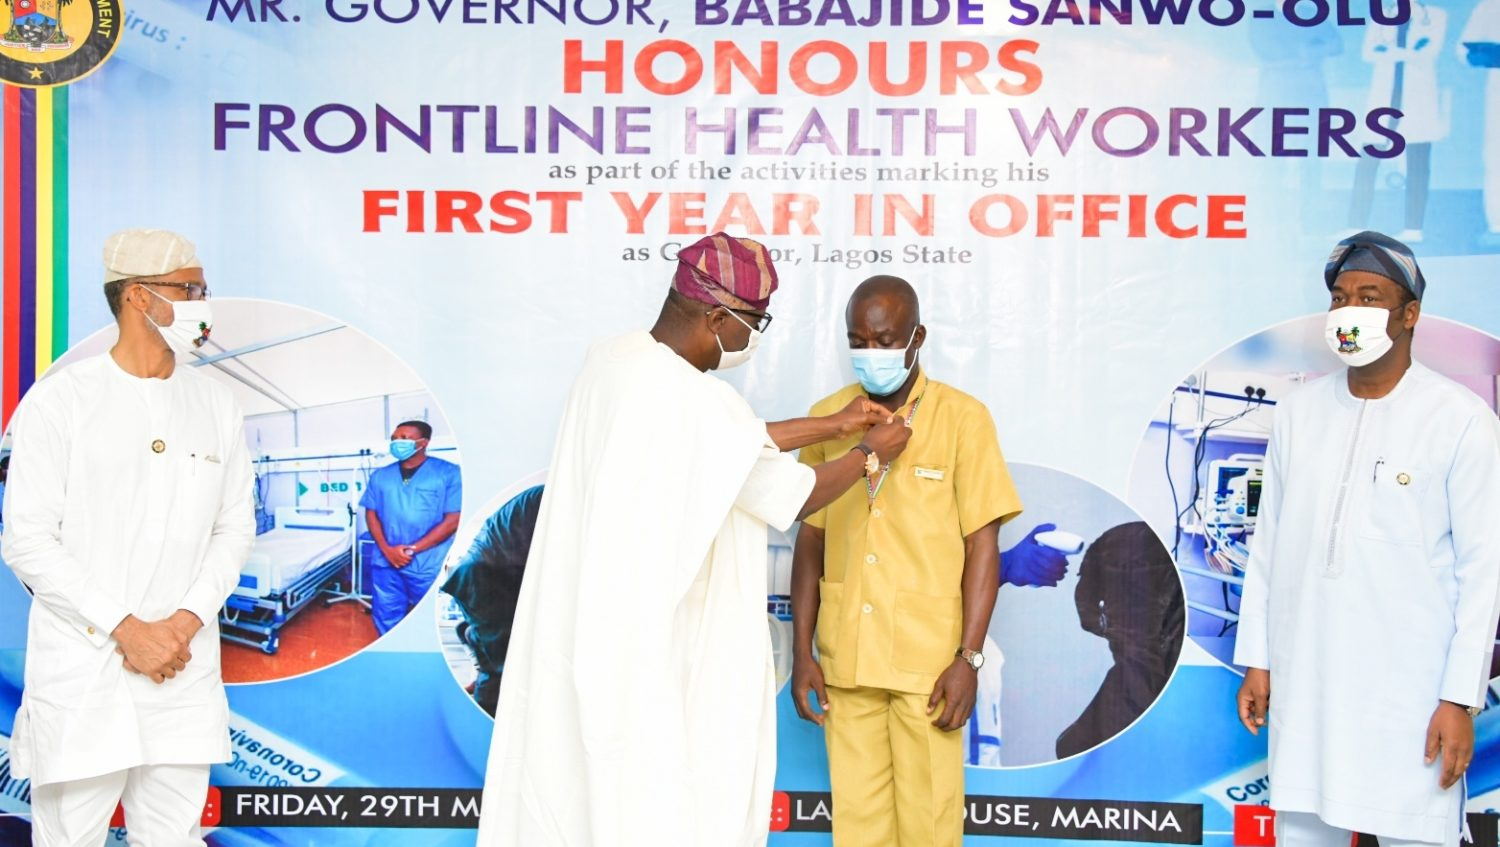 L-R: Lagos State Commissioner for Health, Prof. Akin Abayomi; Governor Babajide Sanwo-Olu, decorating a Frontline Health worker, Mr Tajudeen Bankole - Security Officer of Mainland Hospital Yaba and the Deputy Governor, Dr. Obafemi Hamzat during the Governor's award presentation to Frontline Health workers as part of activities to commemorate his administration's First Year in Office, at Lagos House, Marina, on Friday, May 29, 2020.